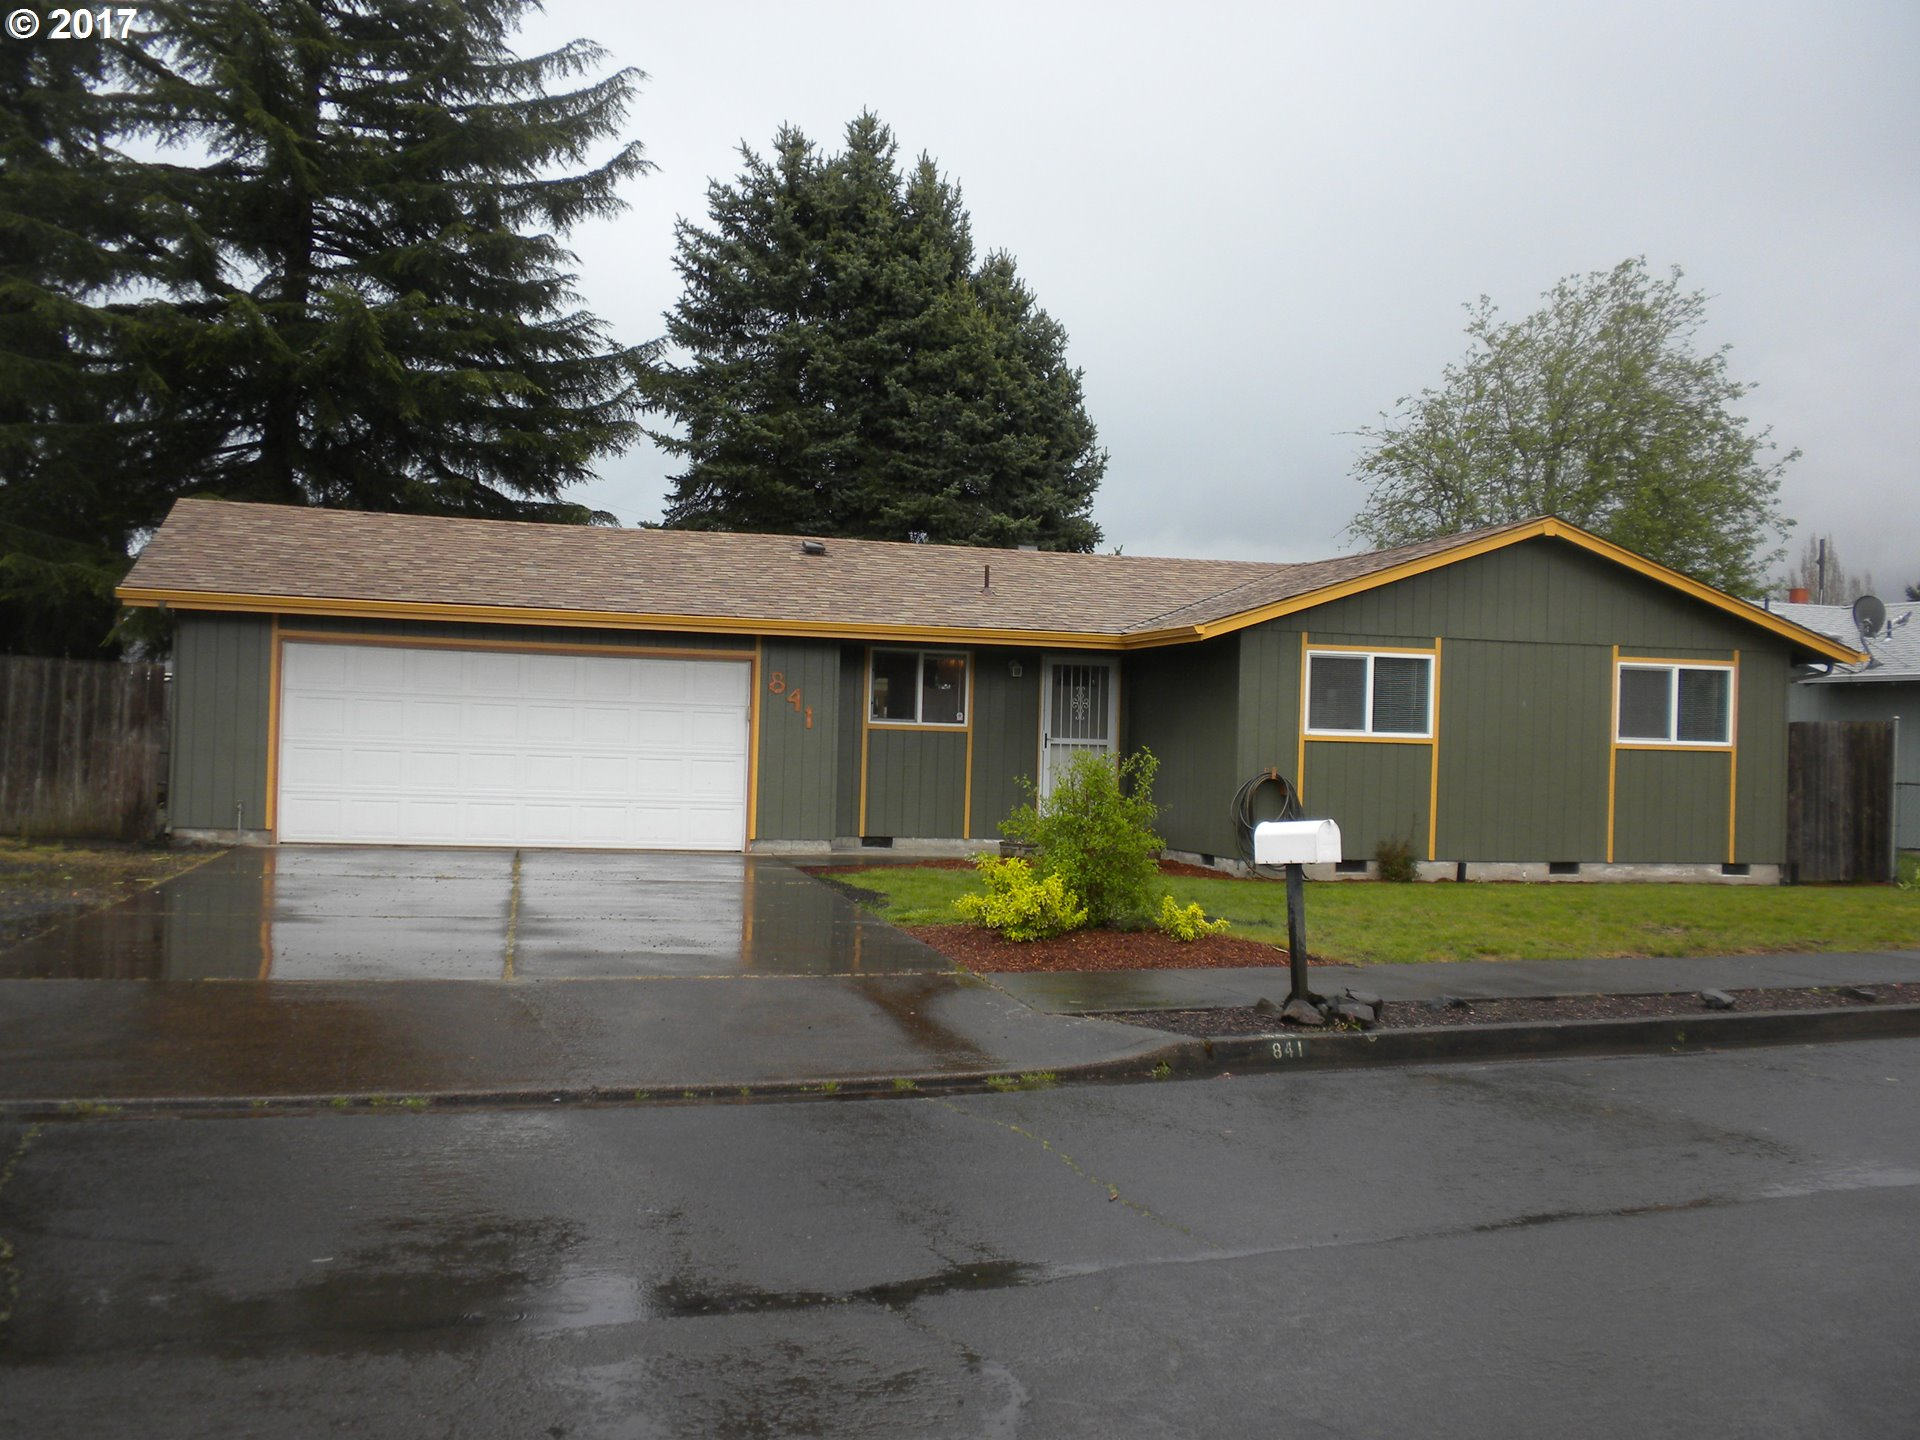 841 54TH PL, Springfield, OR 97478